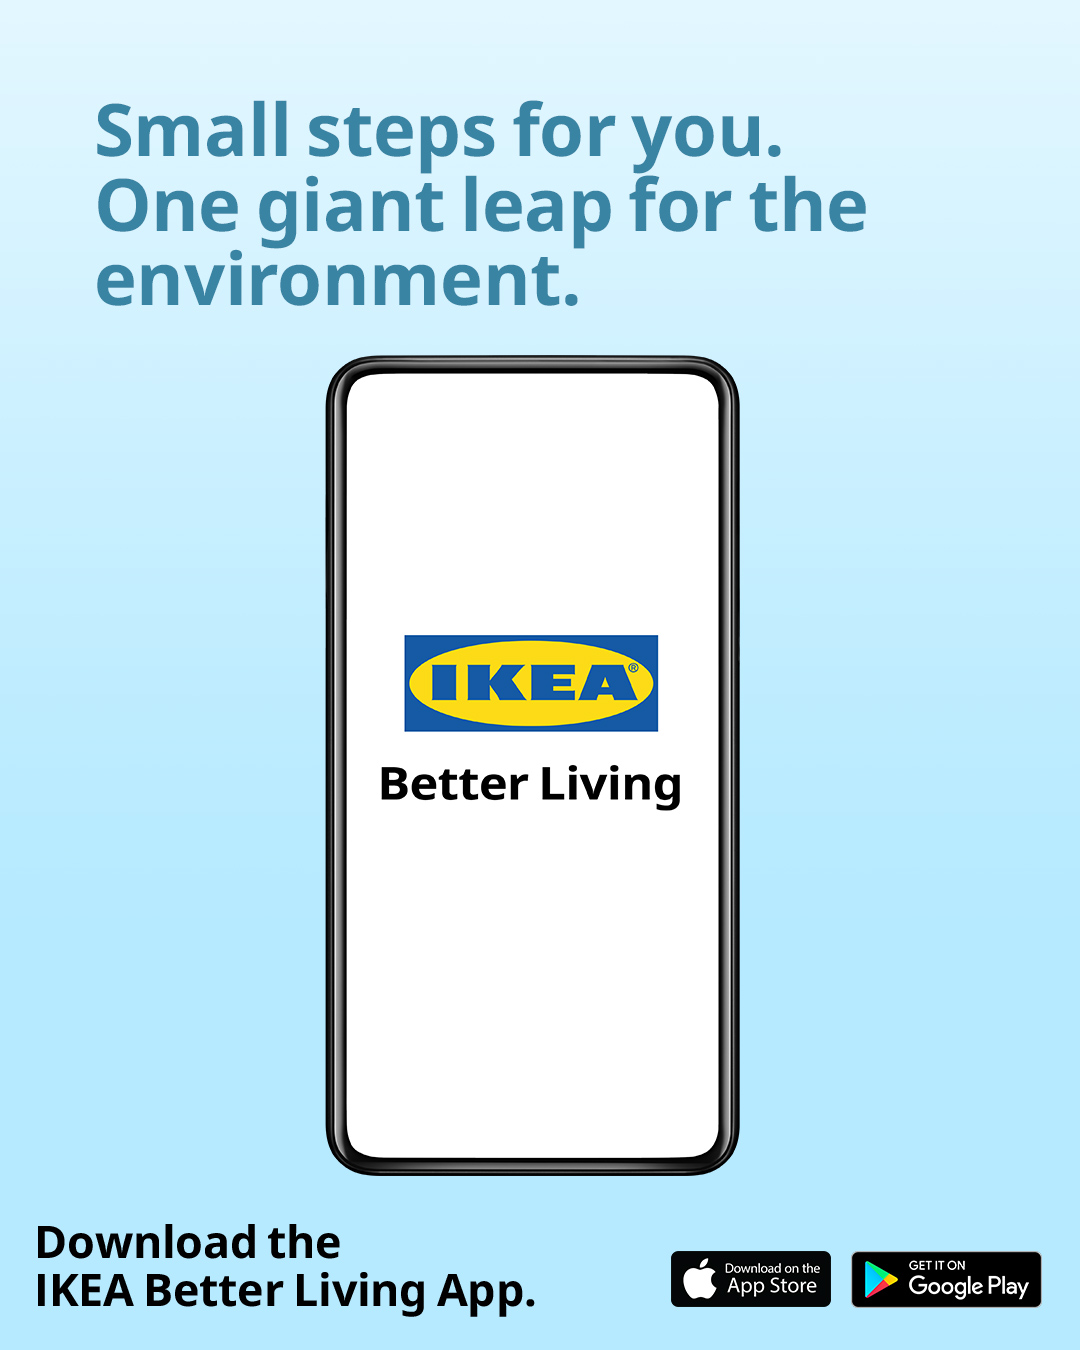 IKEA launches Better Living app to inspire healthier and happier living